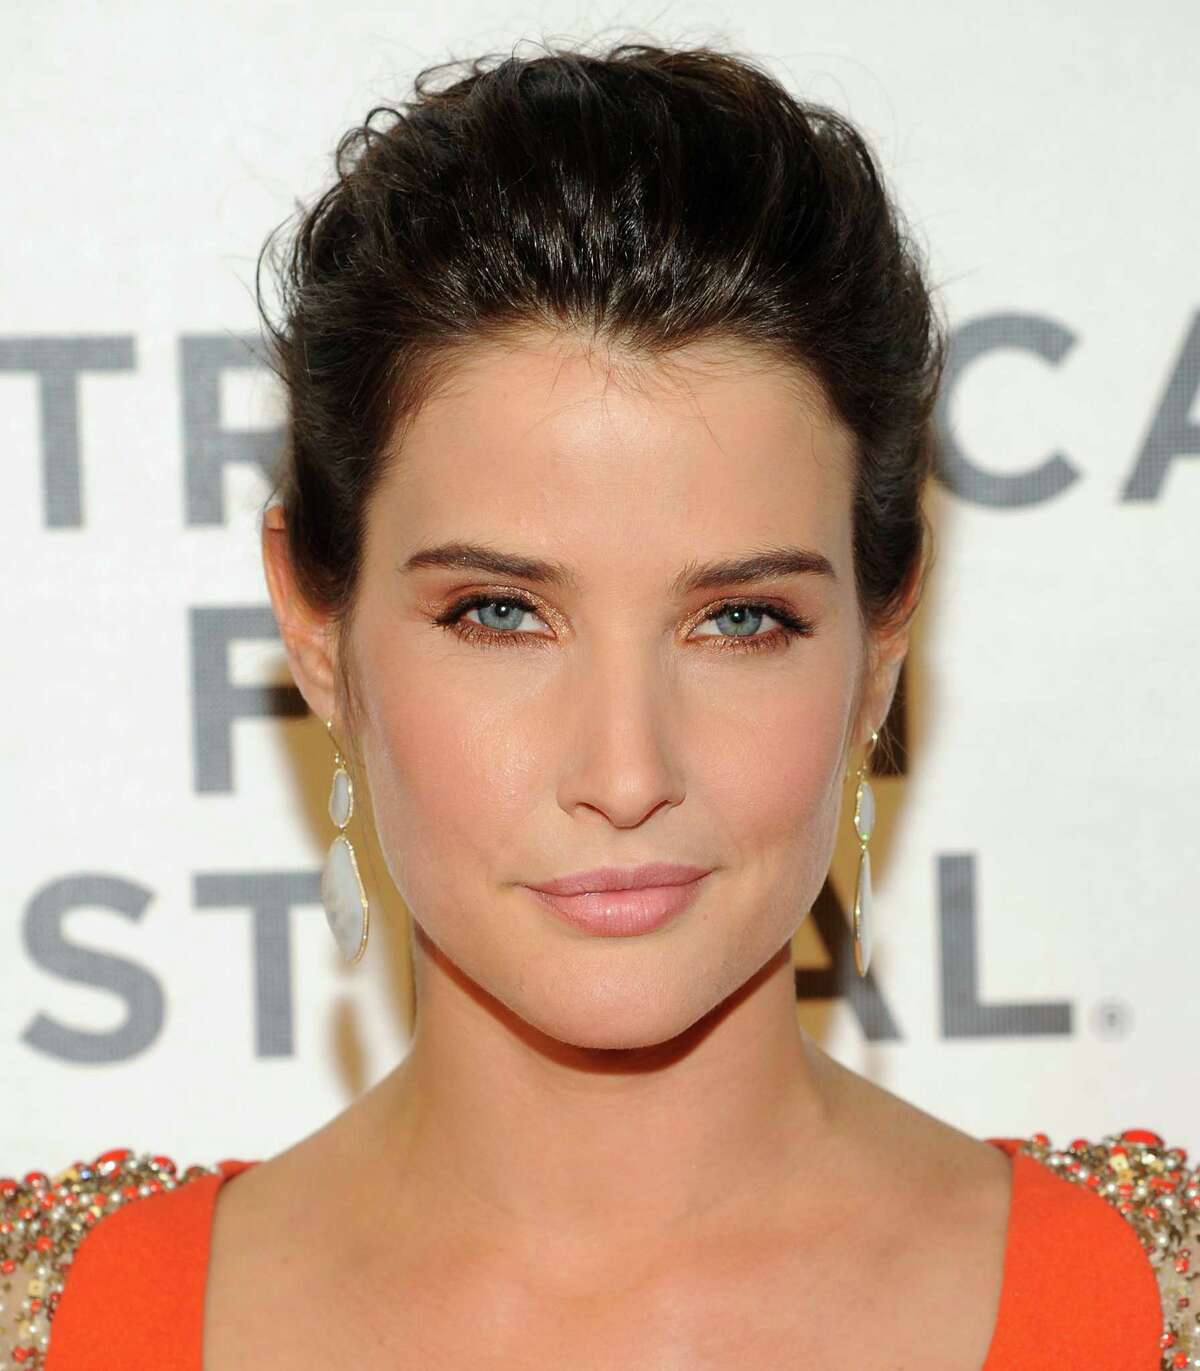 Actress Cobie Smulders attends the premiere of